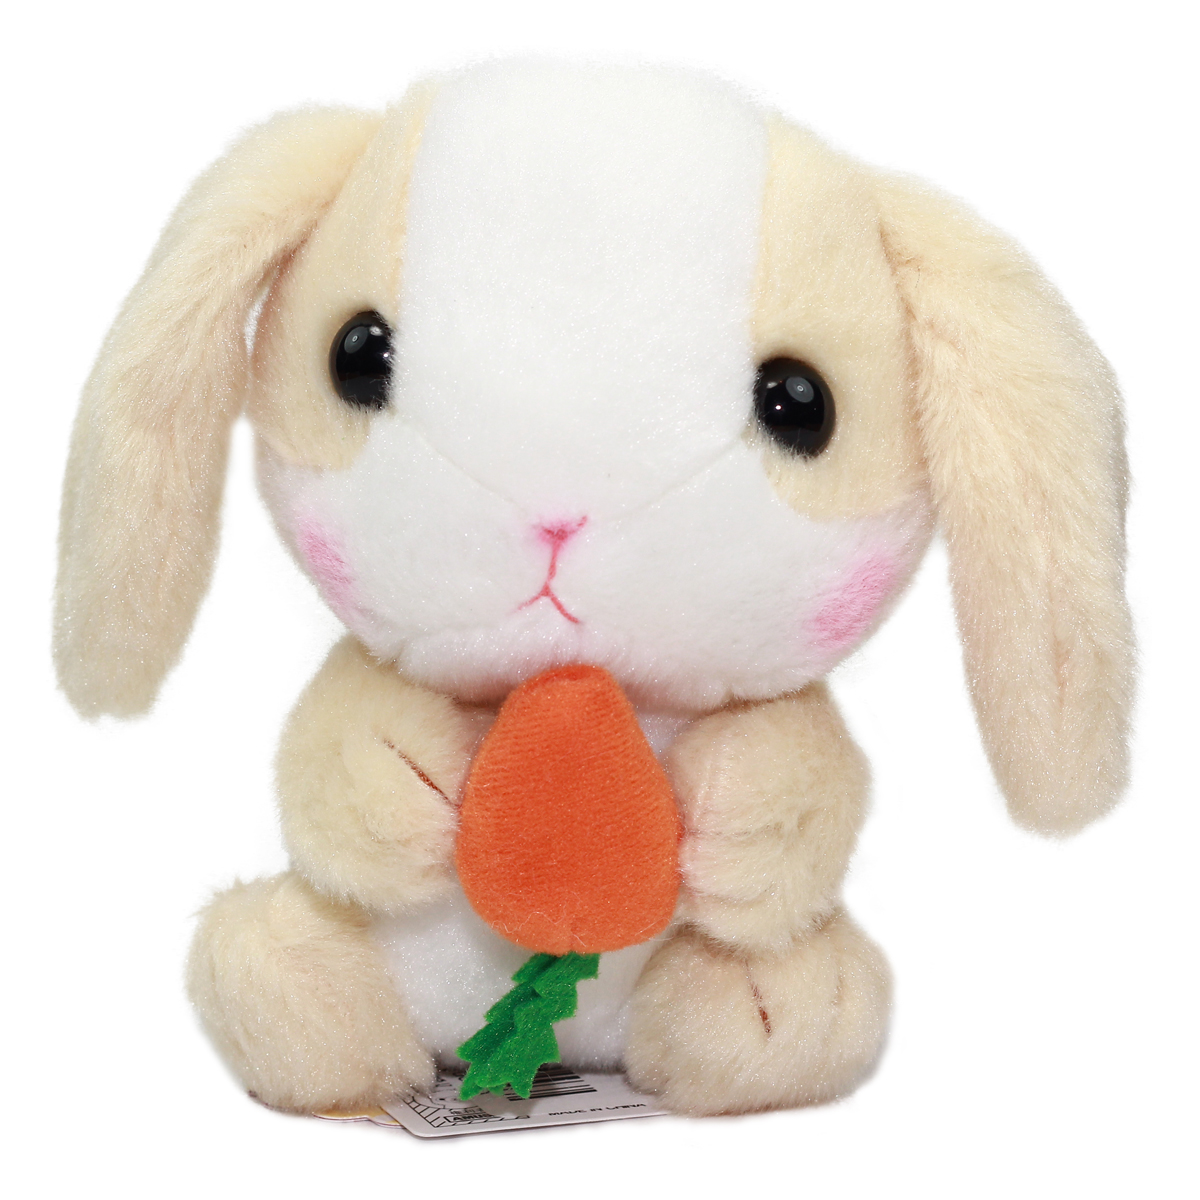 Amuse Bunny Plush Doll Sweet Garden Collection Cute Stuffed Animal Toy Beige/White 6 Inches